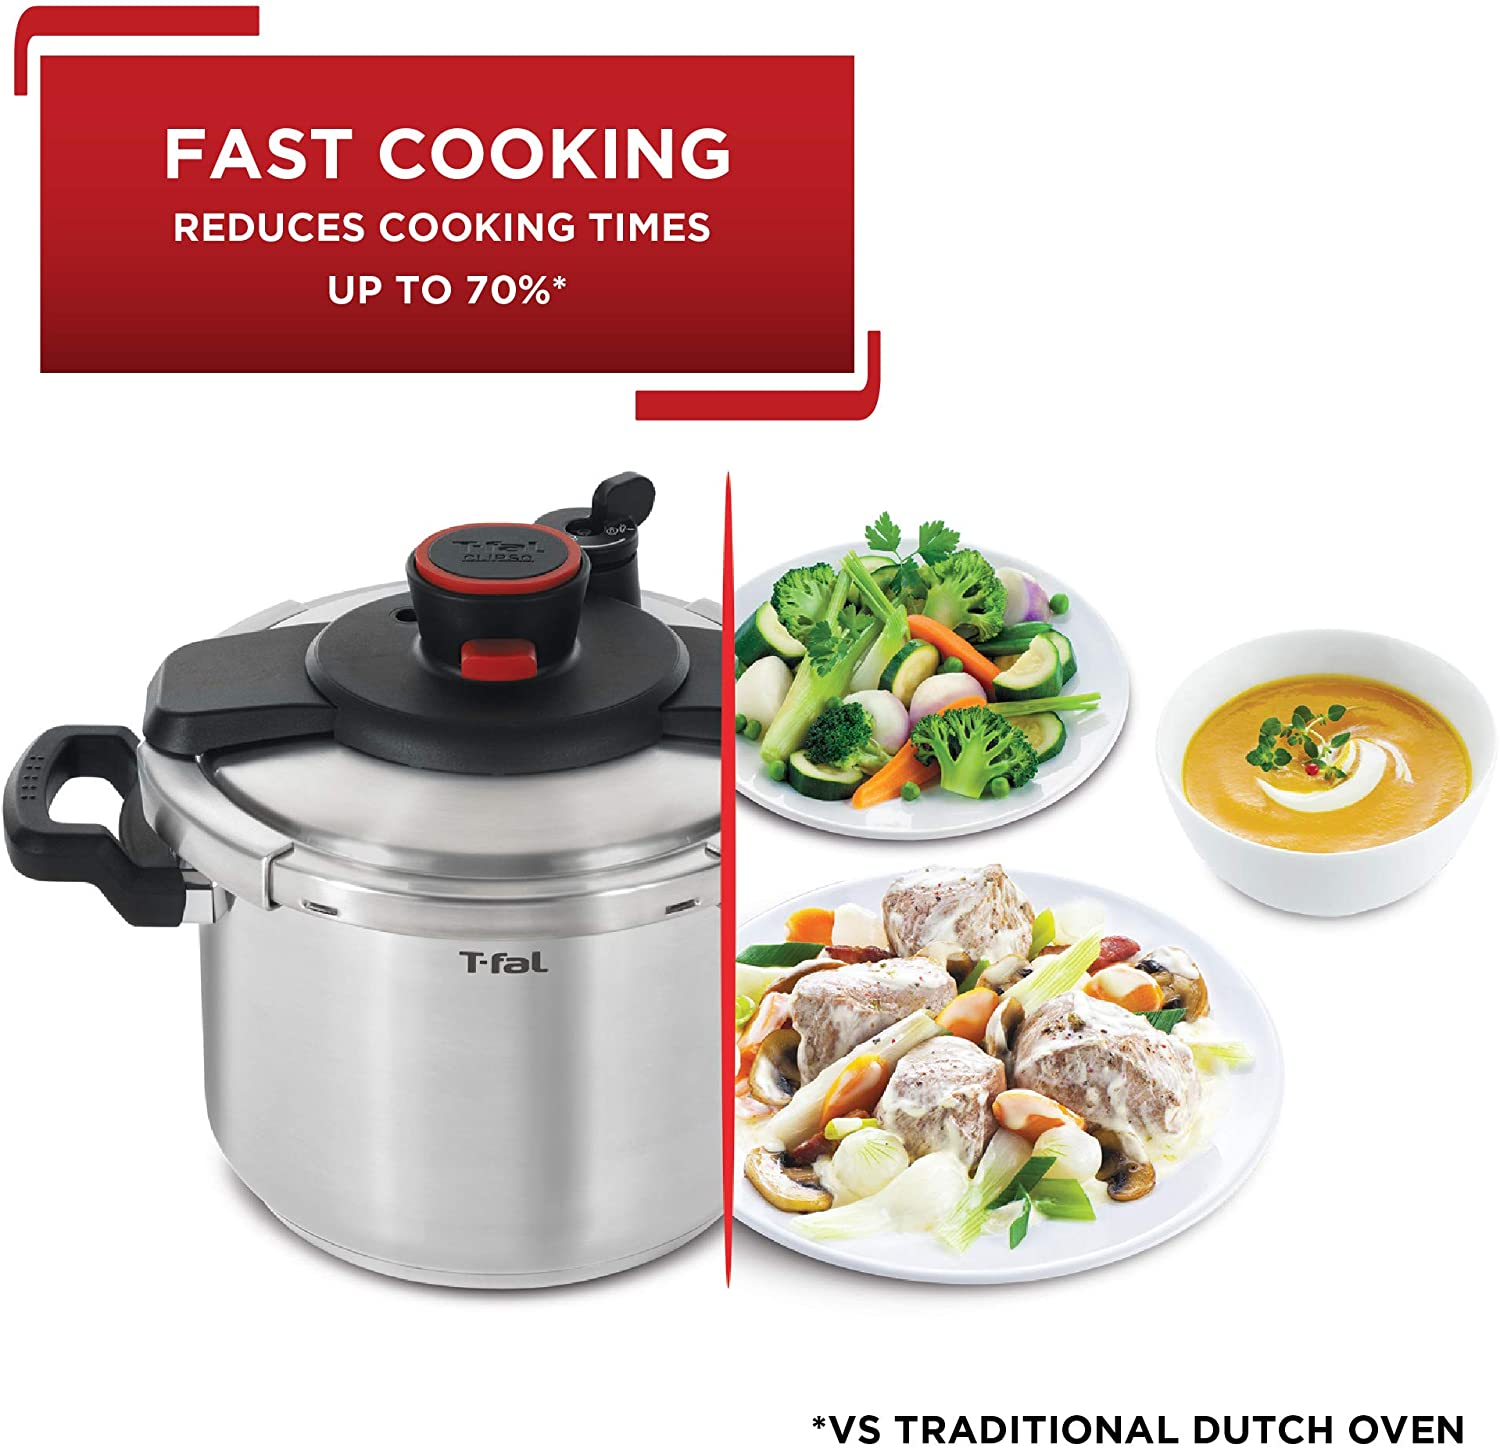 Fast cooking with T-fal induction compatible pressure cooker